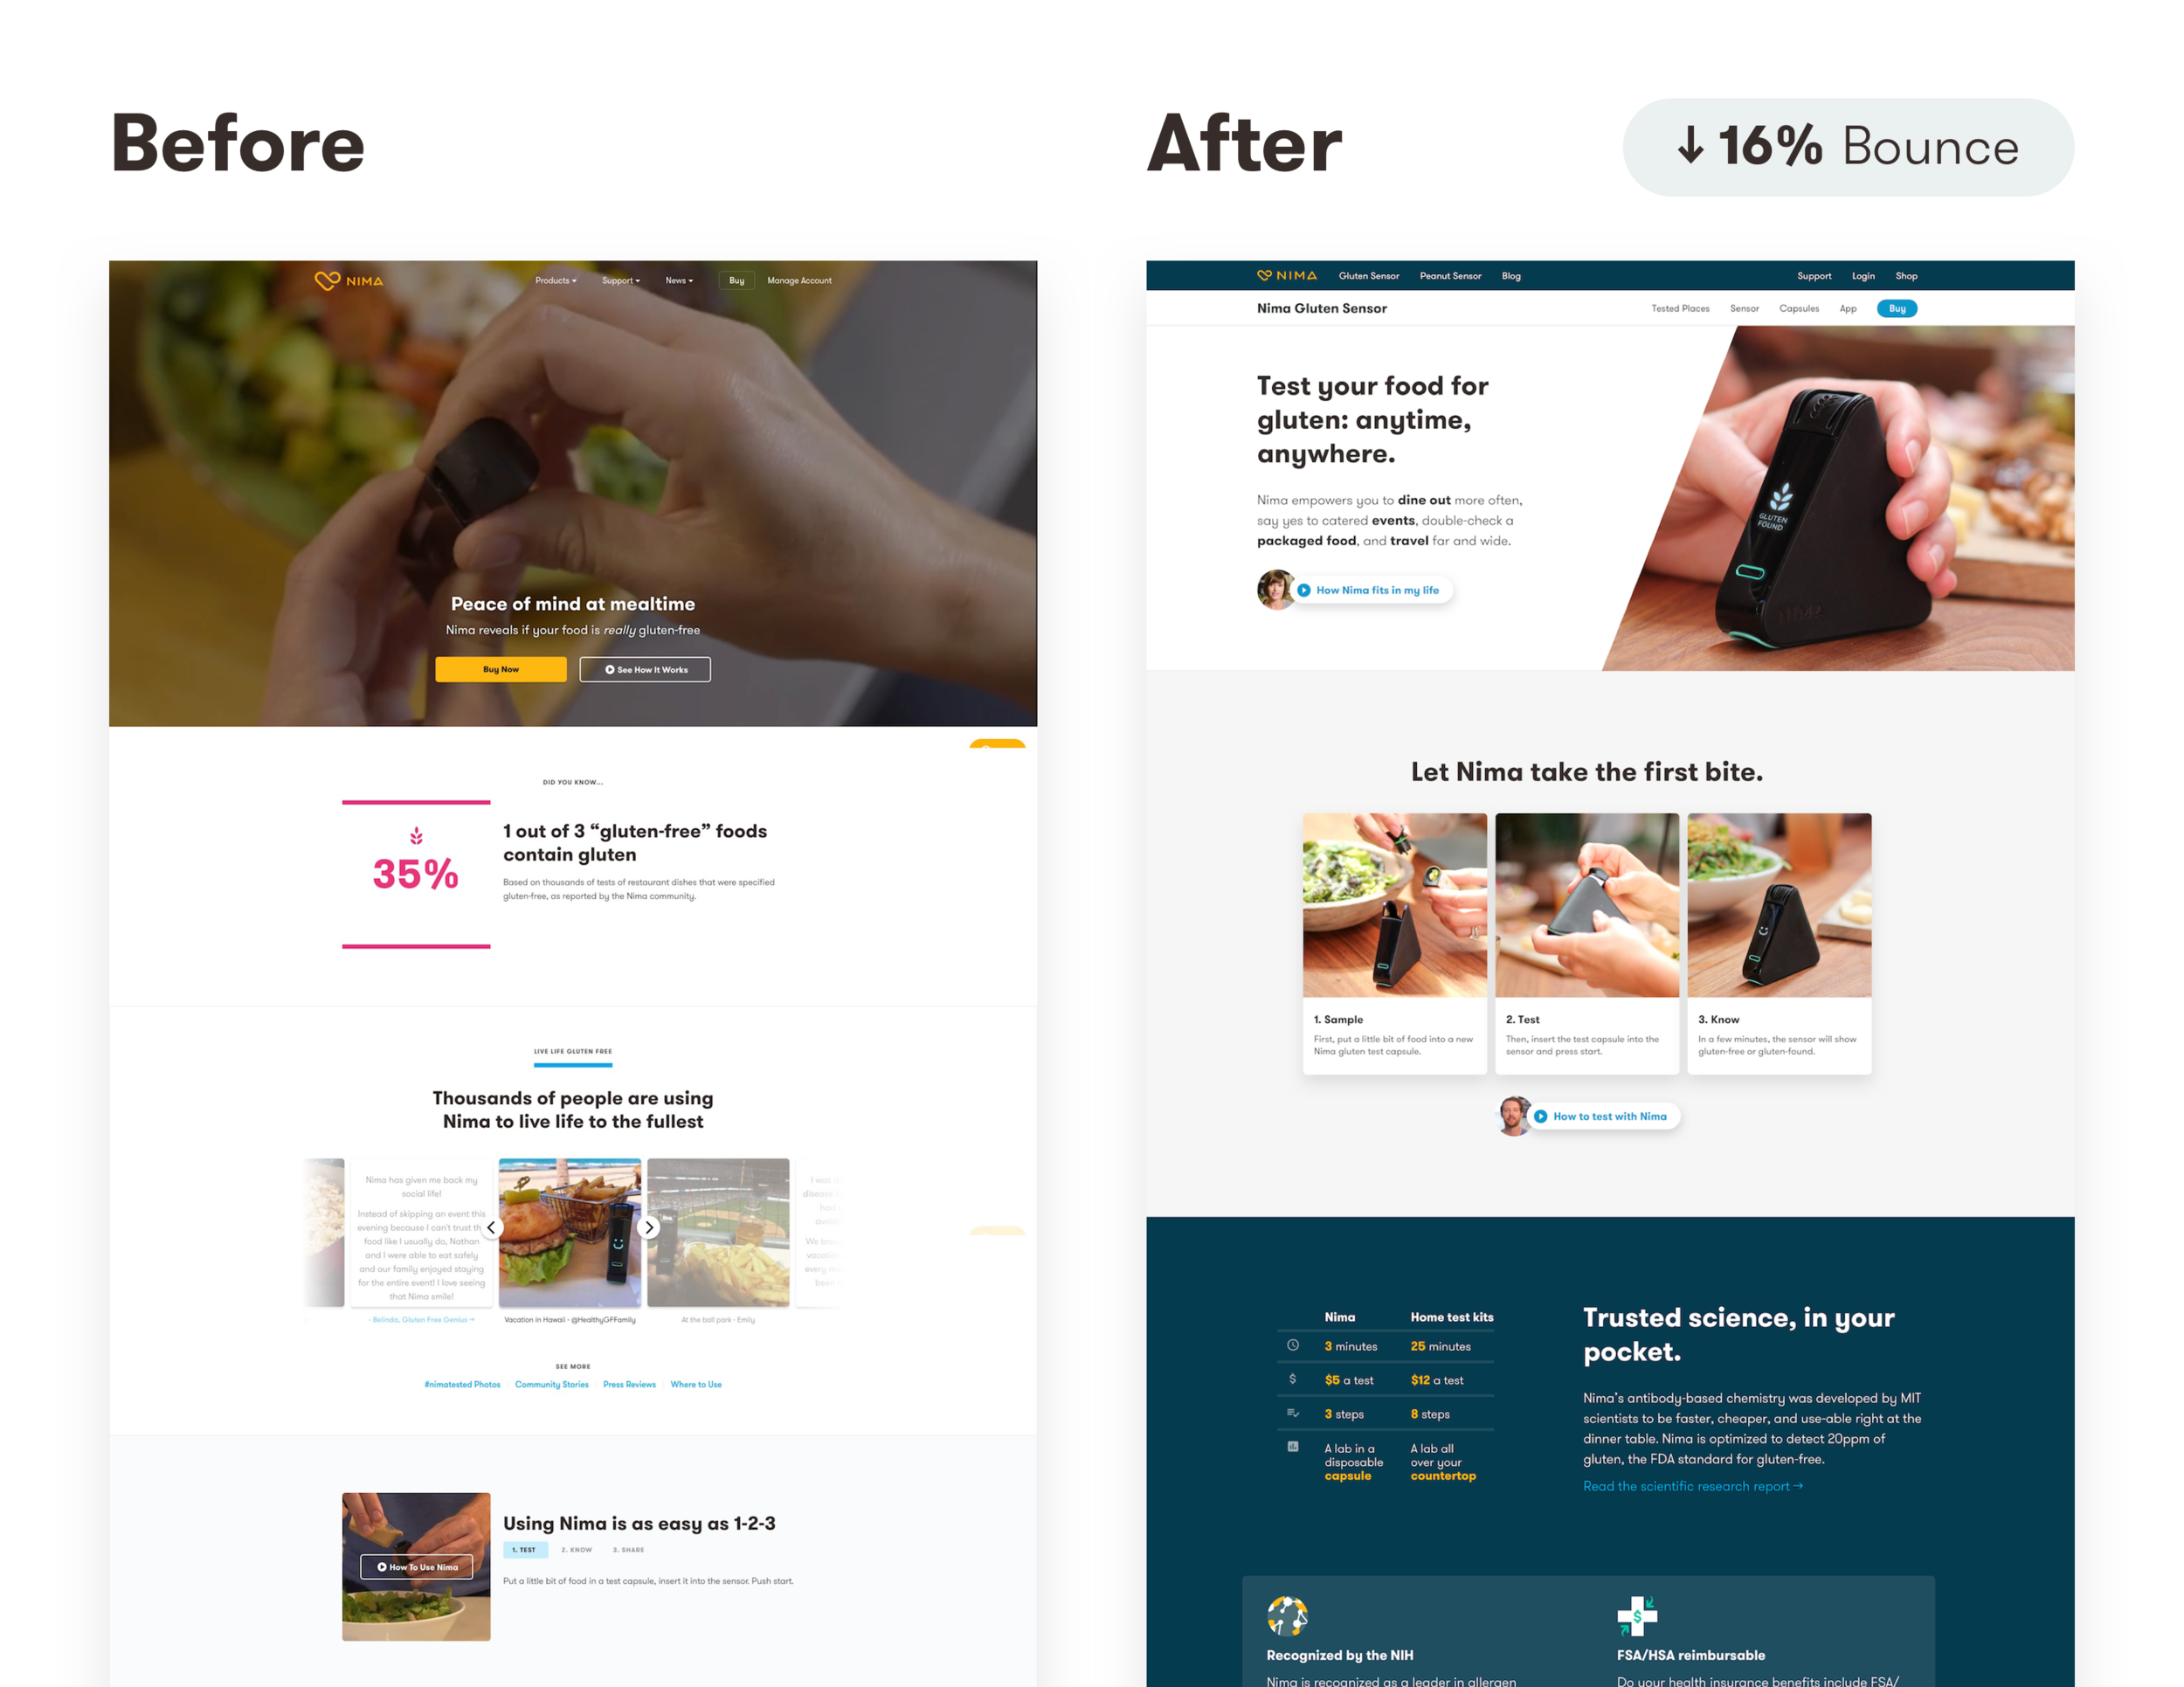 ec copy with before after@2x.png